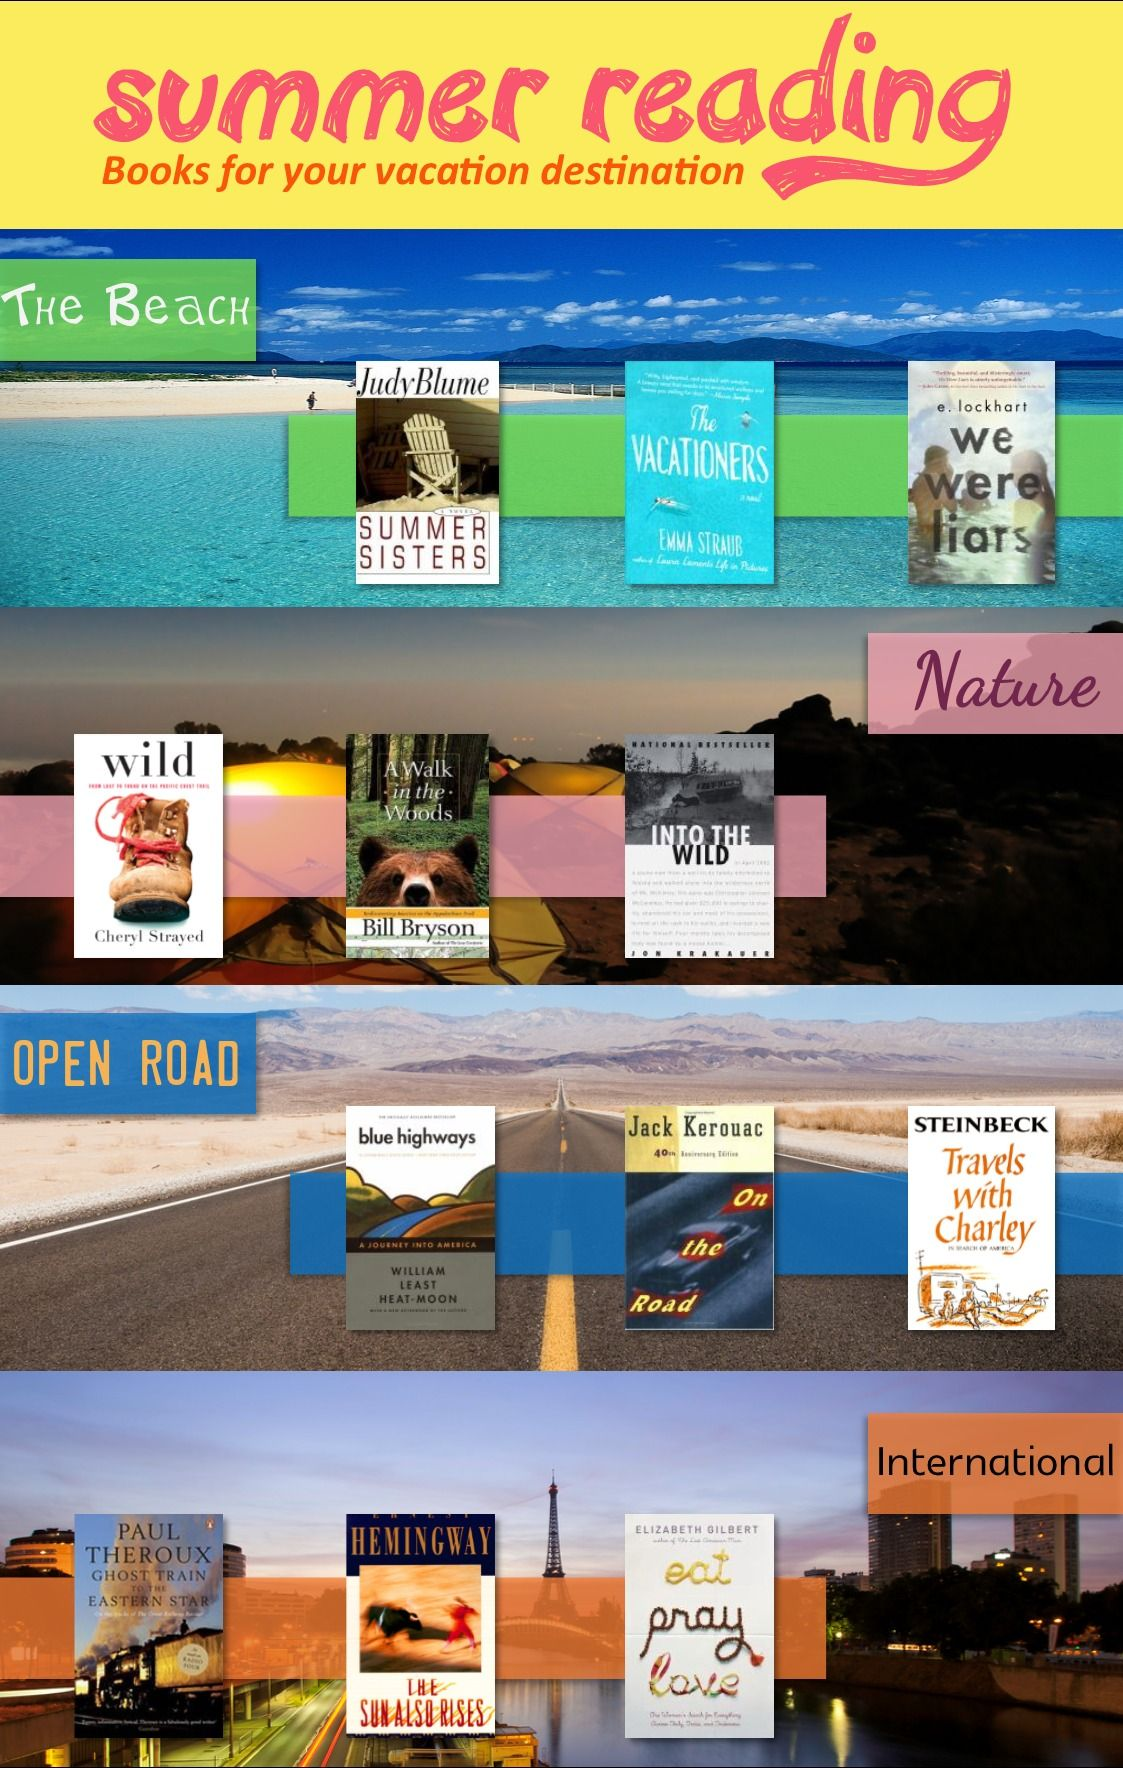 Books Suggestions Based On Your Summer Vacation Destination Book Recommendations Summer Book Club Book Suggestions